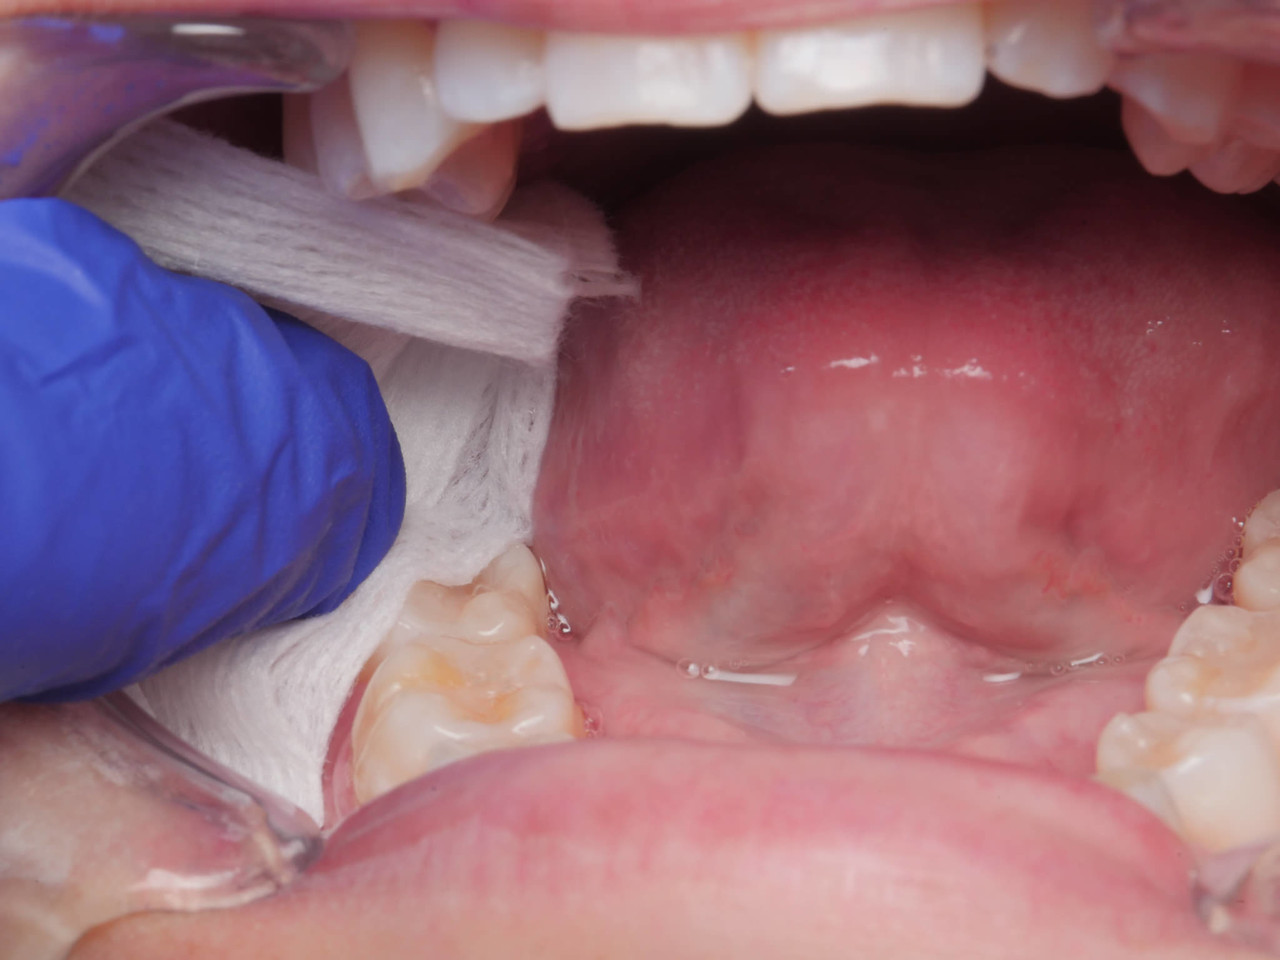 Gently apply a 2x2 gauze to lightly dry out the mucosa.  You don't want to dessicate it; just remove the excess saliva